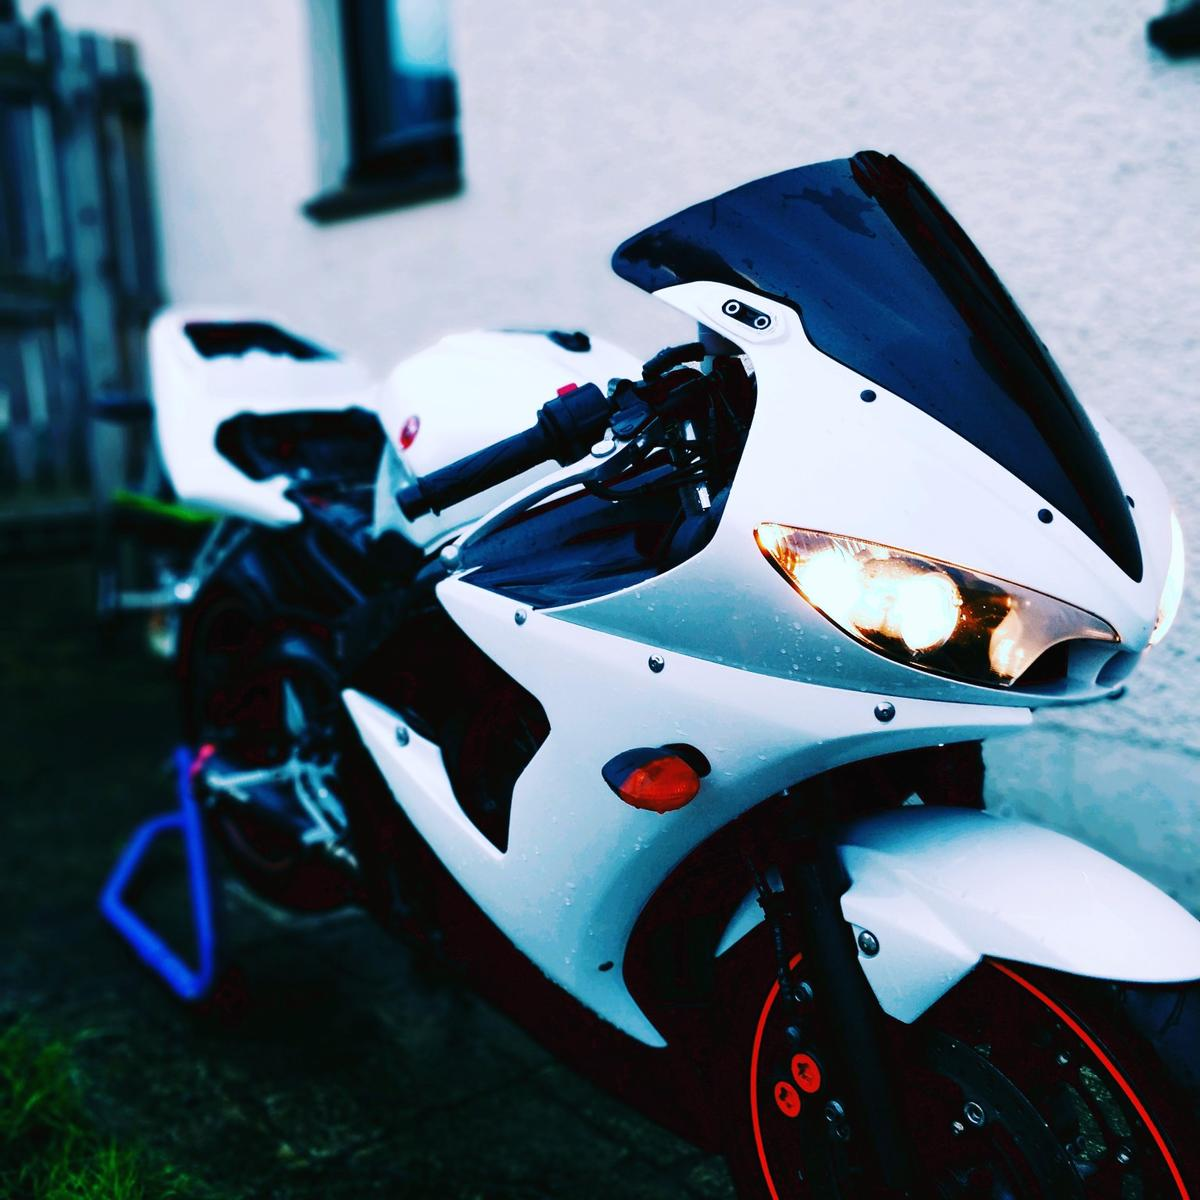 Yamaha R6 Price Reduced Due New Car Purchase In Iv7 Bridge For 2 999 00 For Sale Shpock